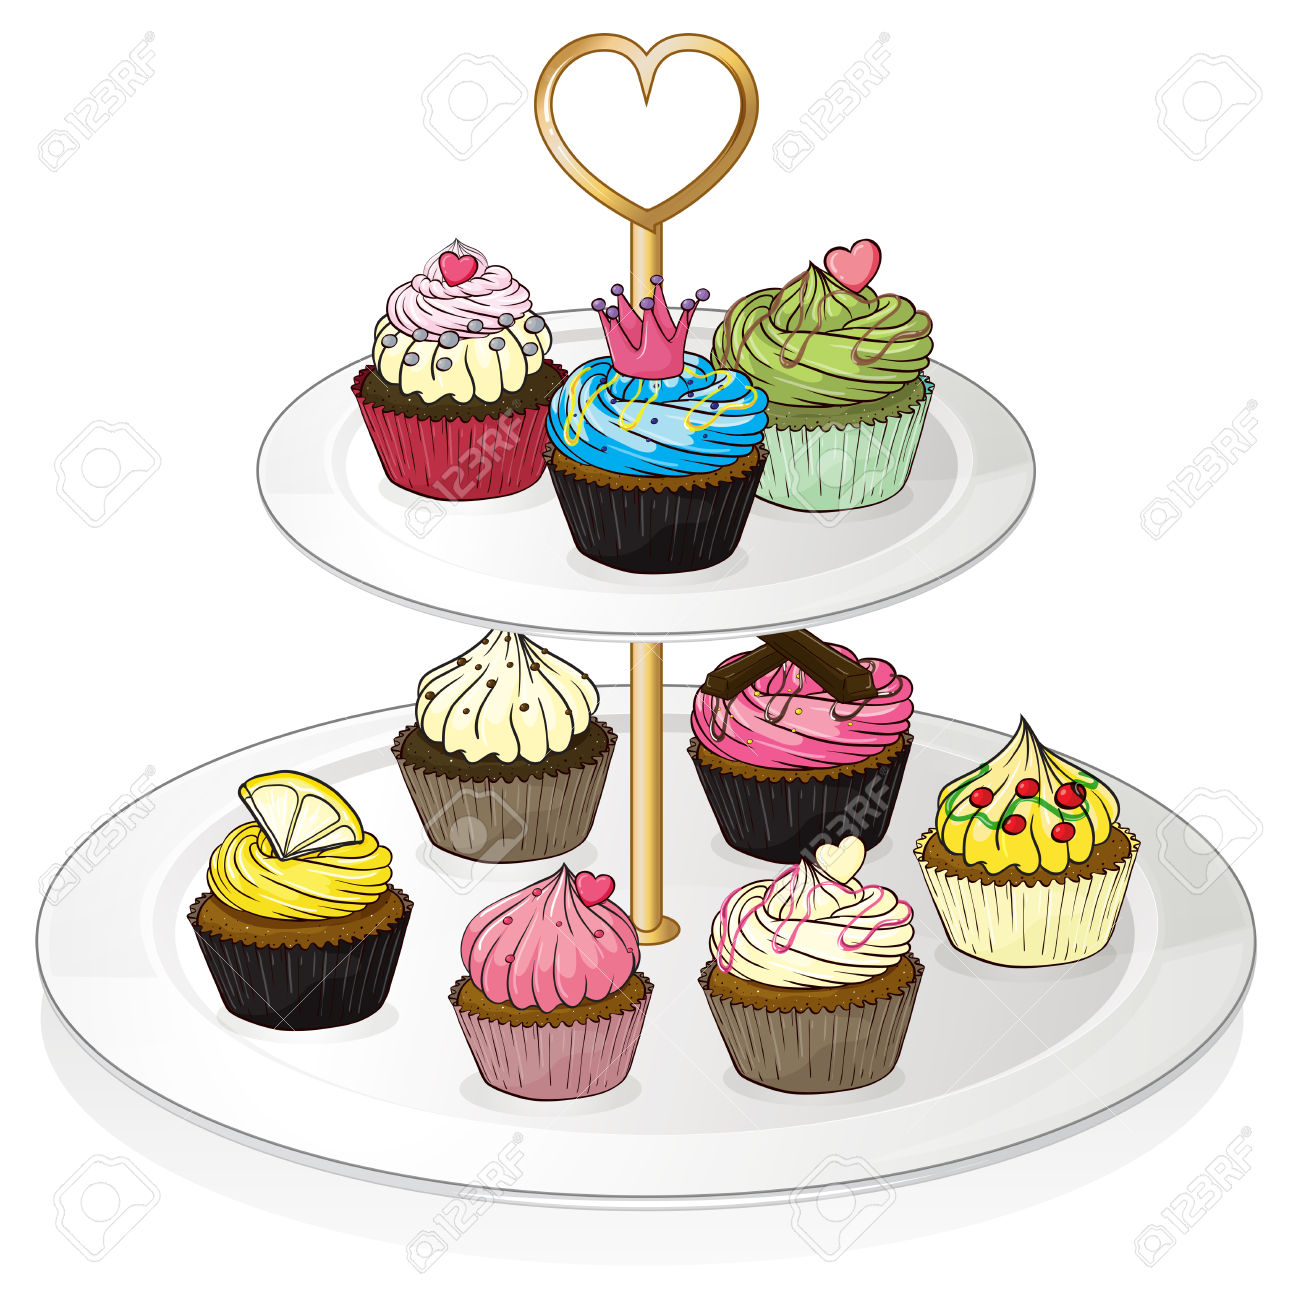 Tray of pastrie clipart banner free download Desserts Cliparts   Free download best Desserts Cliparts on ... banner free download